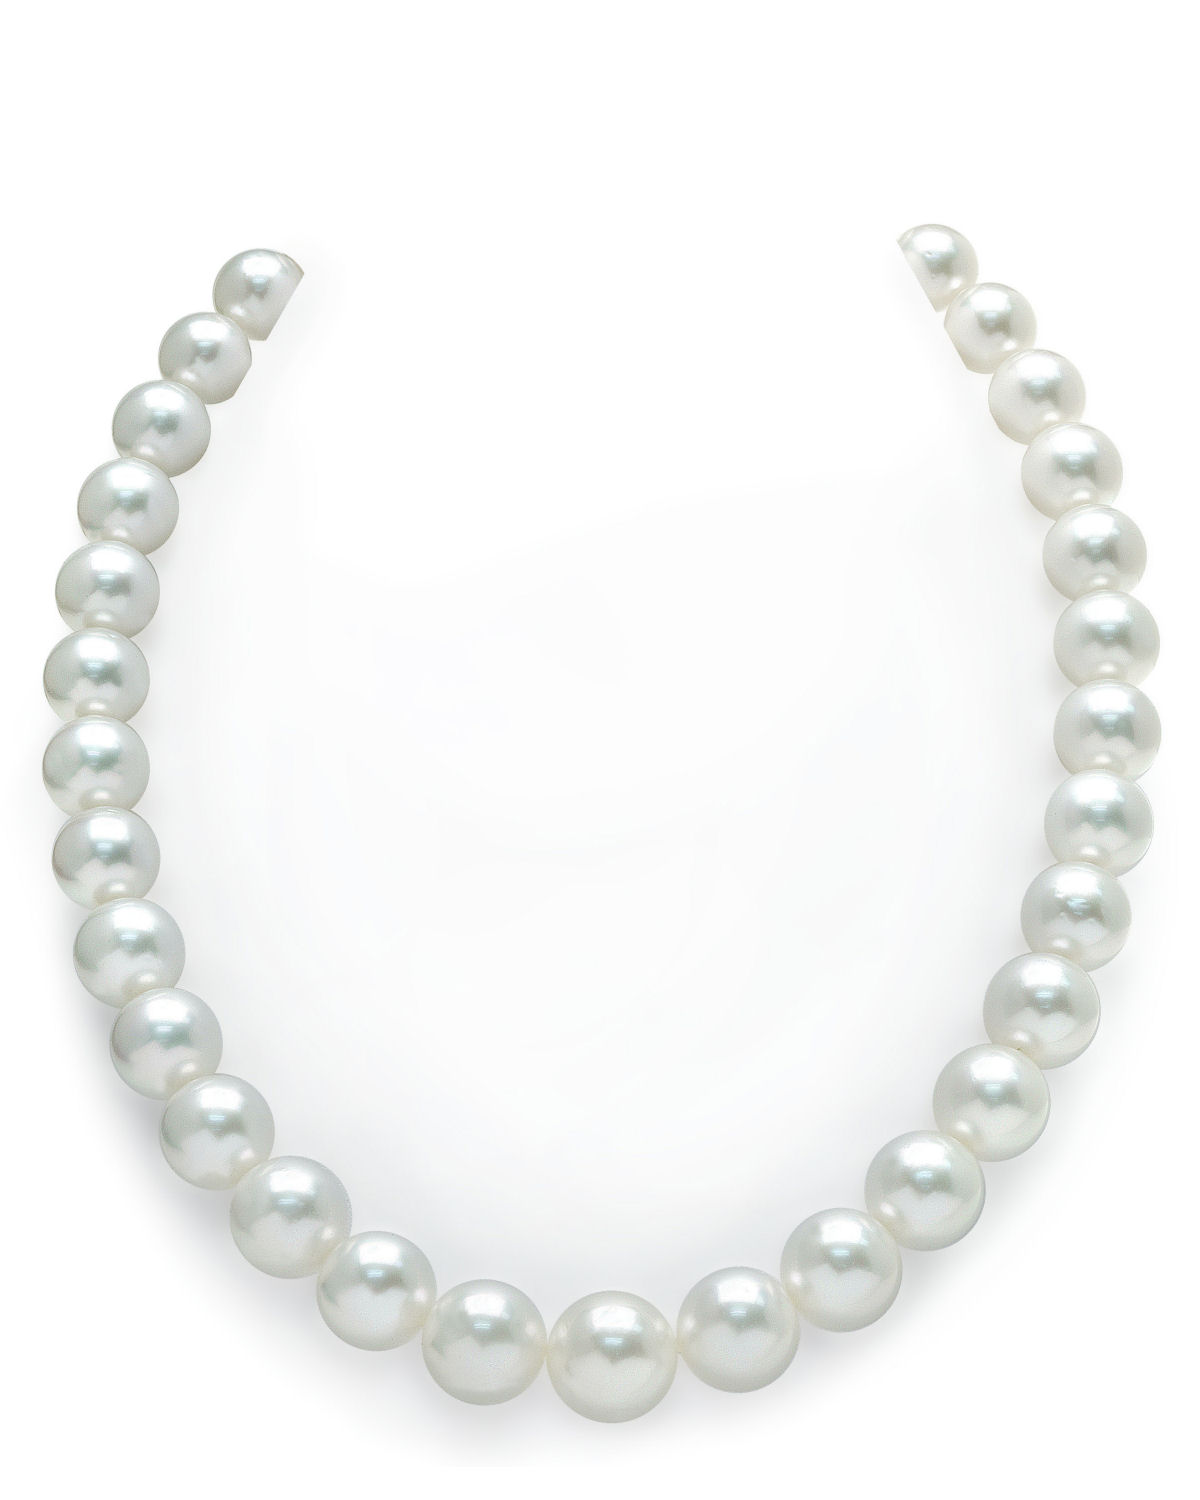 11-14mm White South Sea Pearl Necklace